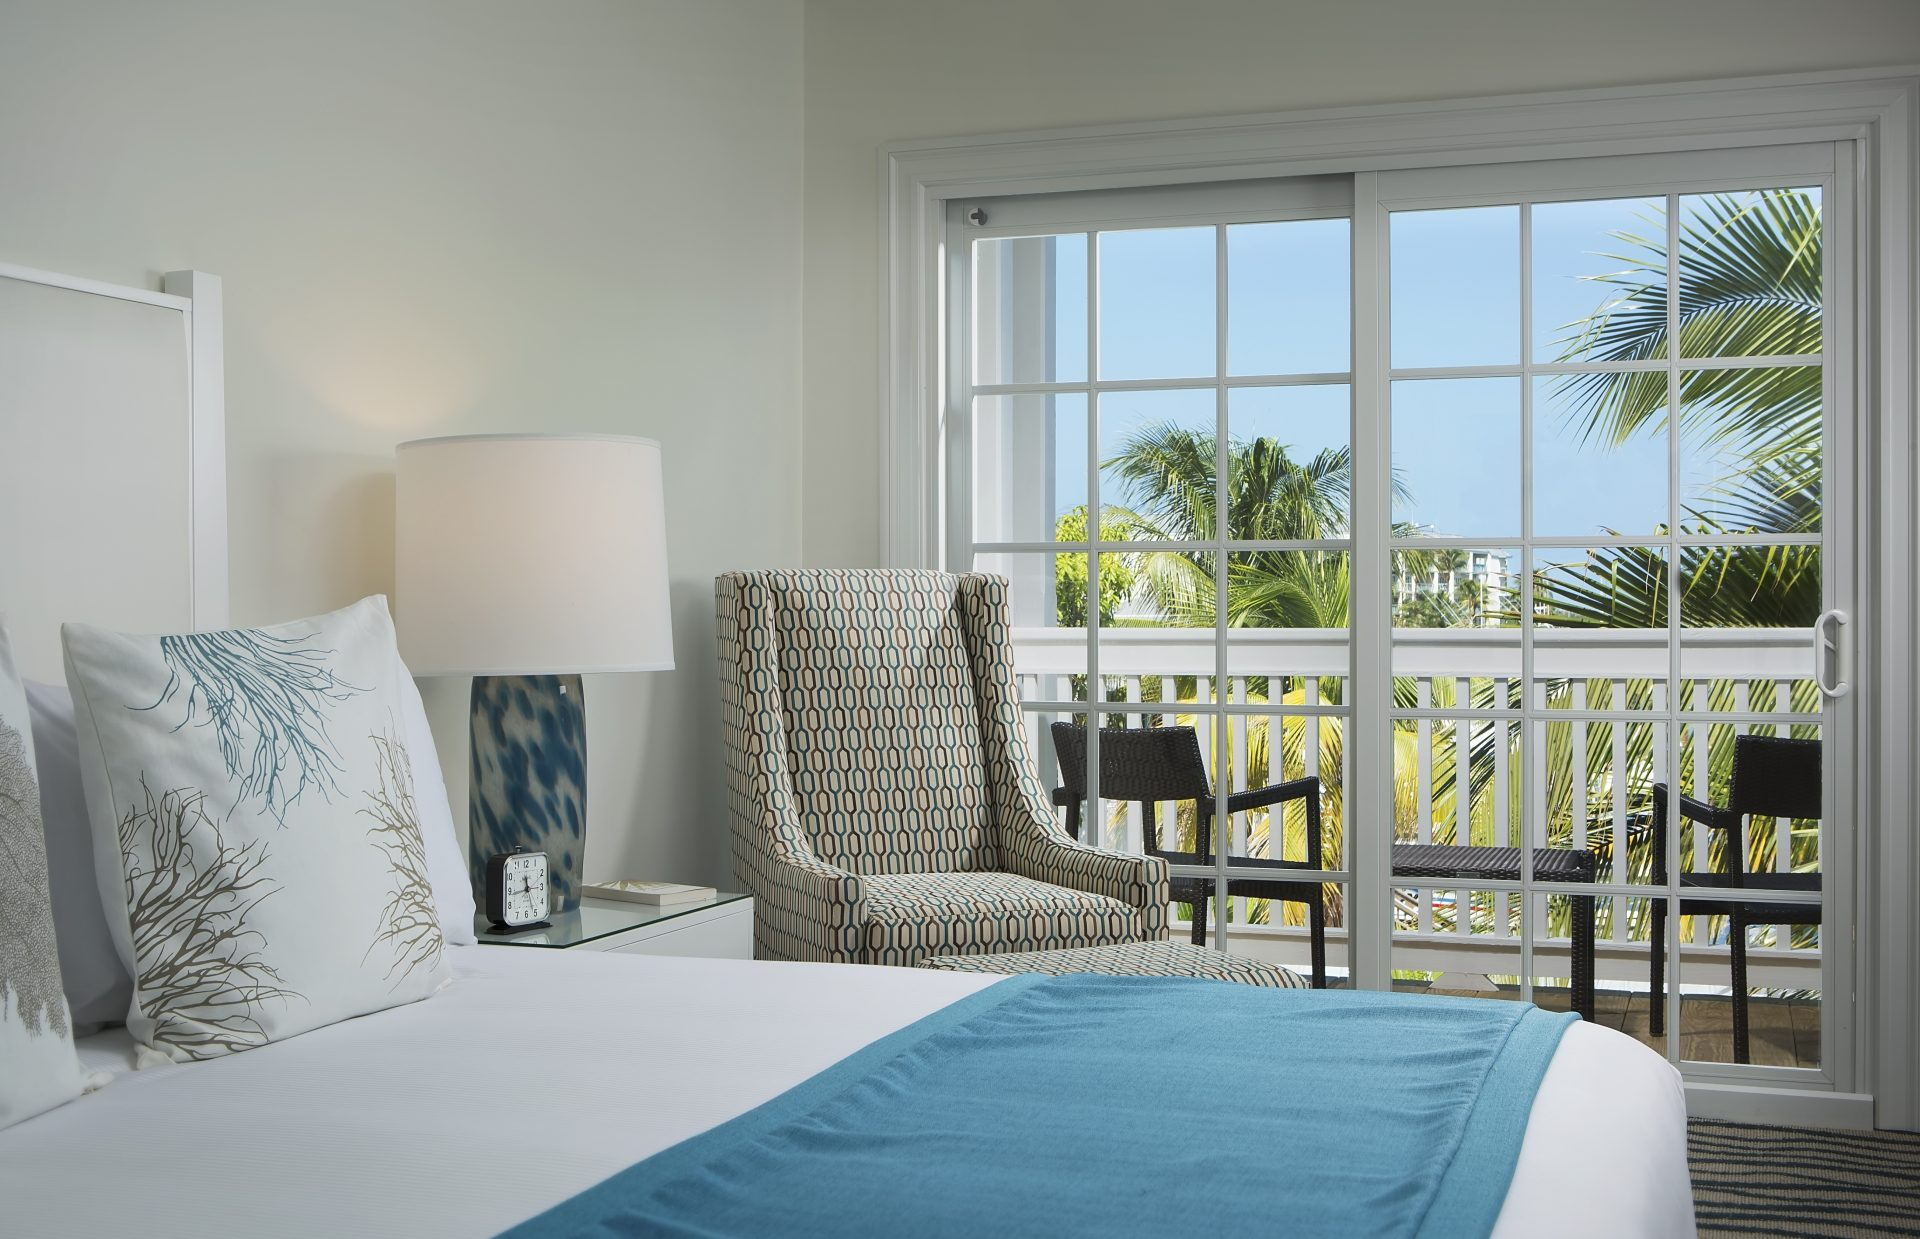 Photo of guest room at The Marker Waterfront Resort in Key West, Florida